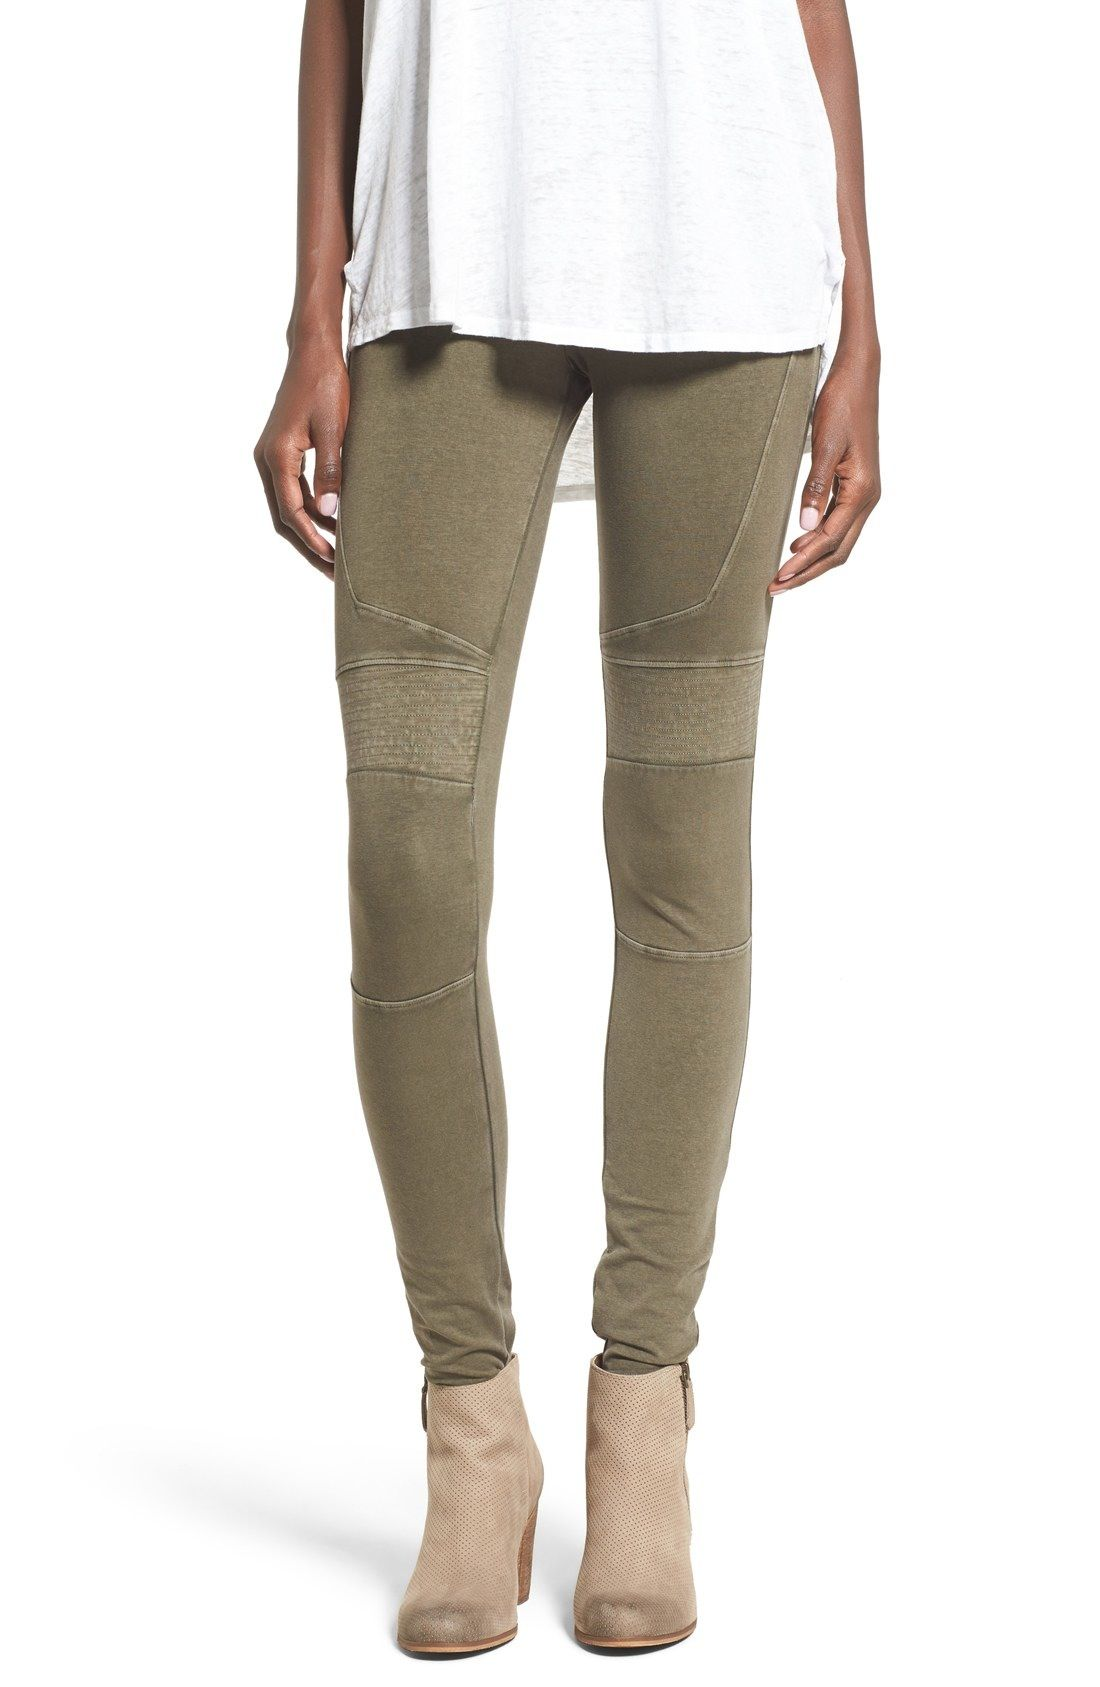 8a051888a38a4f ShopStyle Collective | Tough Luxe | Pinterest | Leggings, Denim and ...